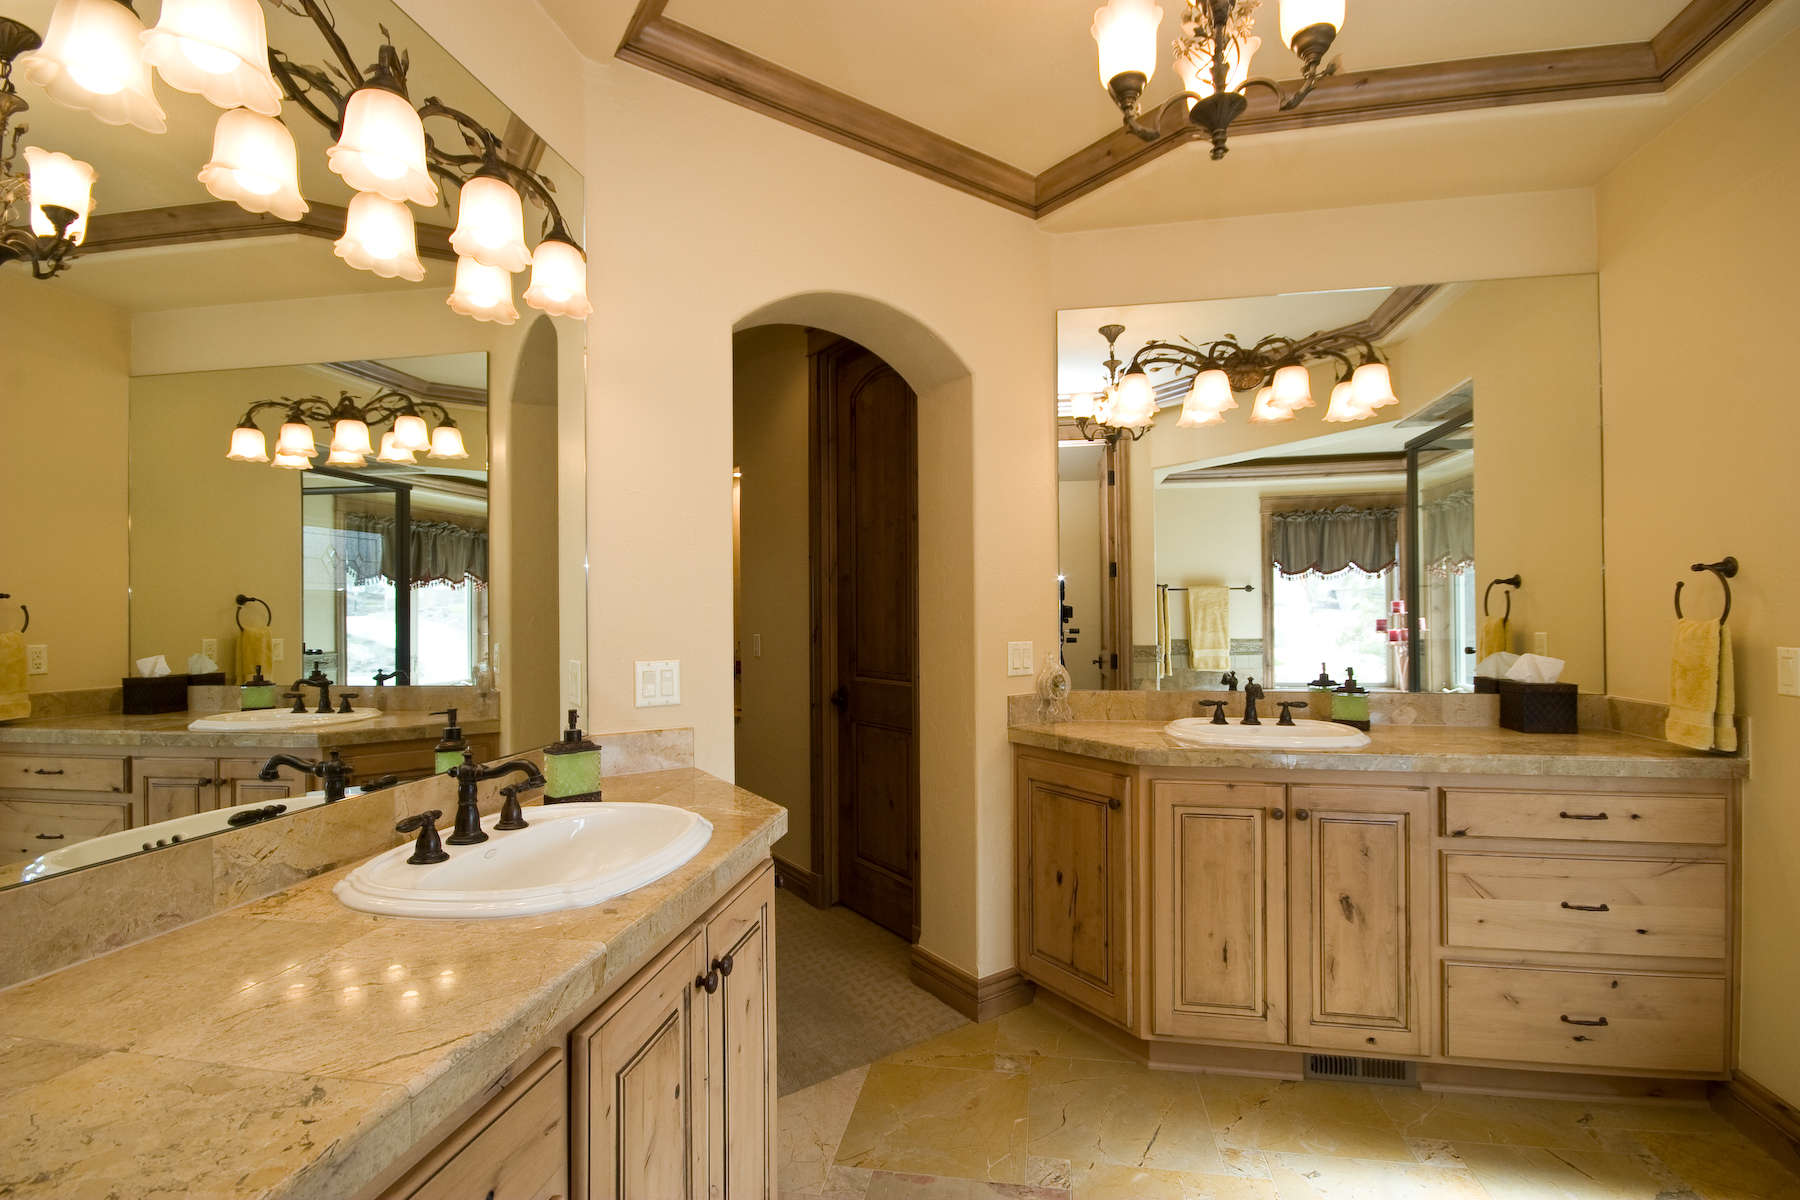 Fancy Bathrooms 7 Steps For Staging Your Home In 2012 Mytowncryer